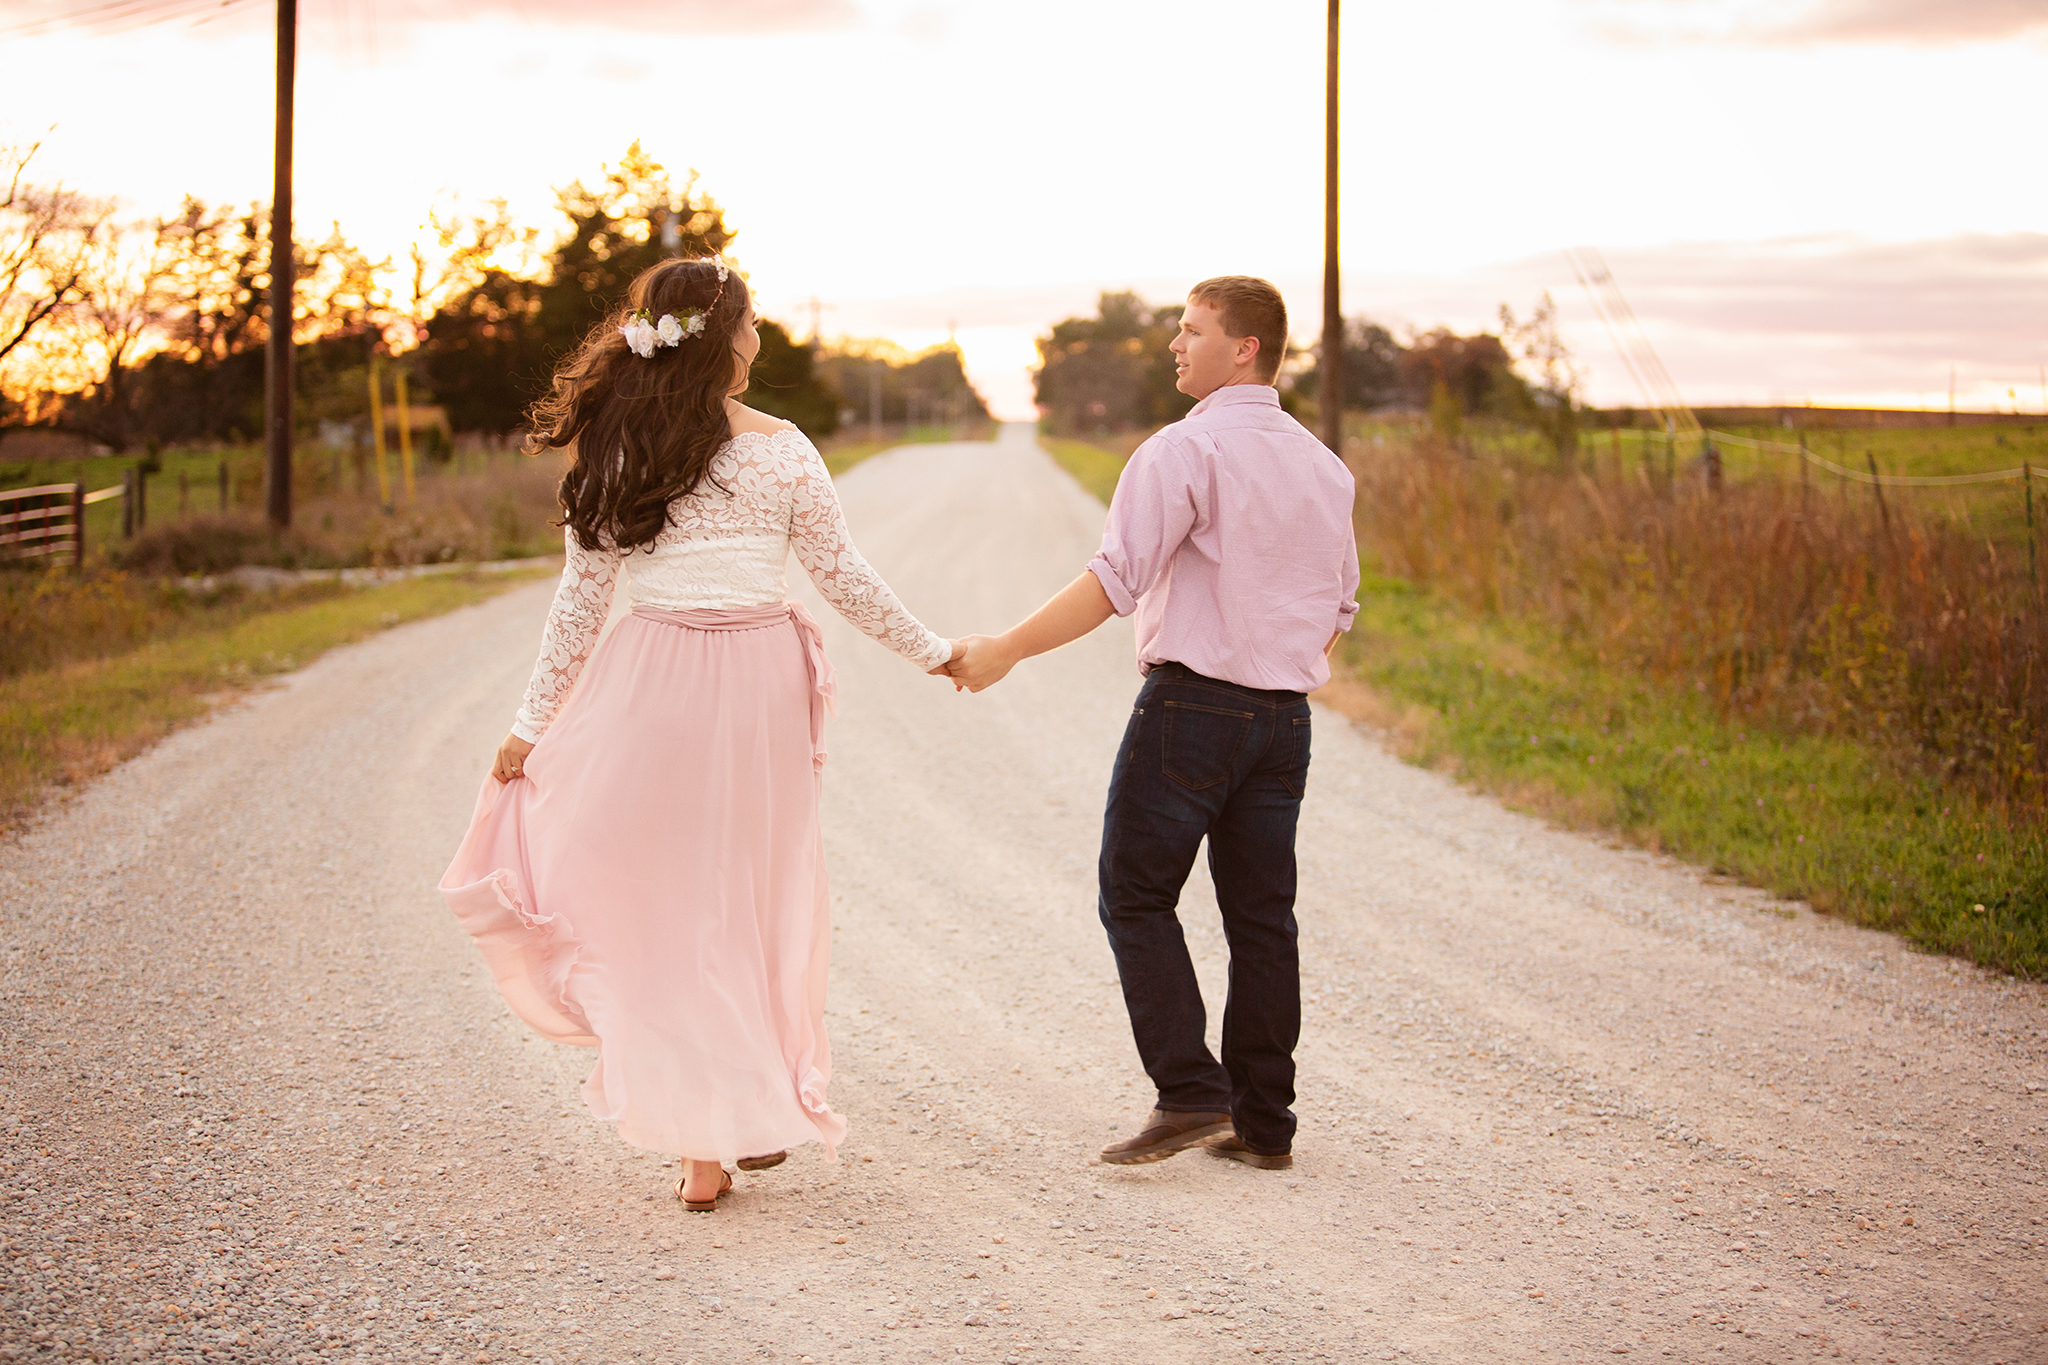 lehia erger photography engagement  wedding cedar rapids iowa country.jpg